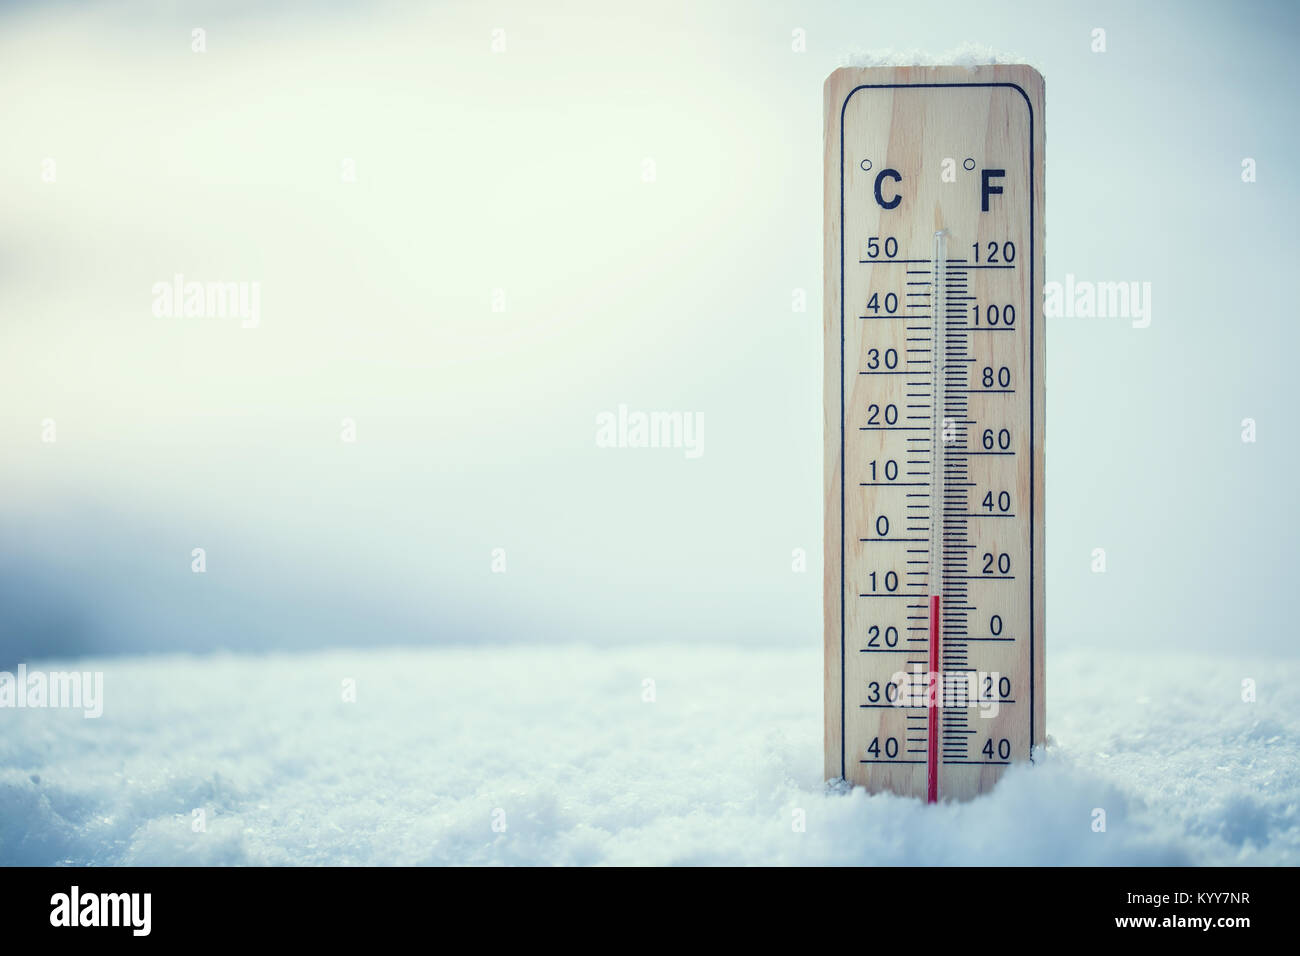 Schlafzimmer Temperatur Unter 10 Grad Thermometer Minus Degrees Stockfotos And Thermometer Minus